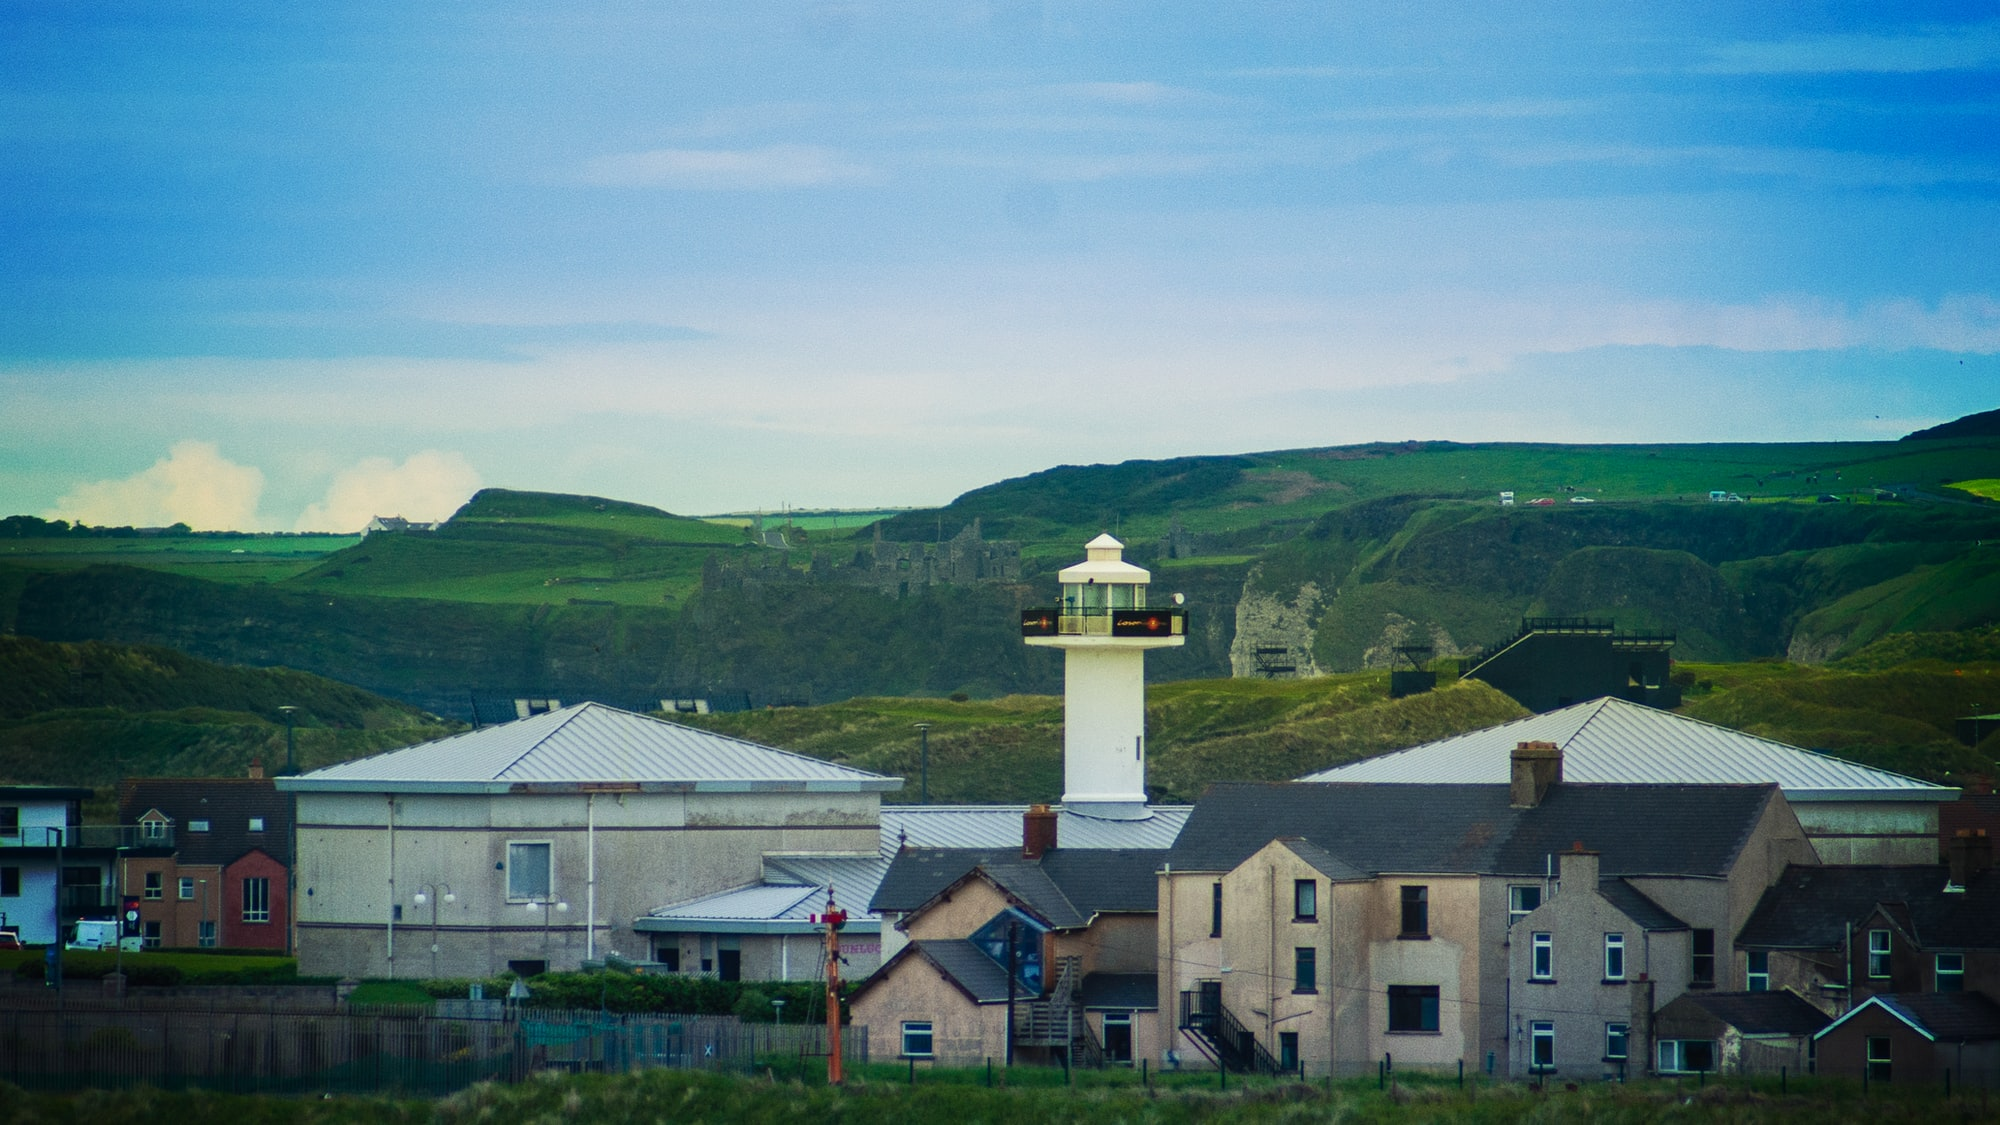 The lighthouse at Portrush with the stands for the Irish Open Golf Tournament and the ruins of Dunluce Castle in the background.